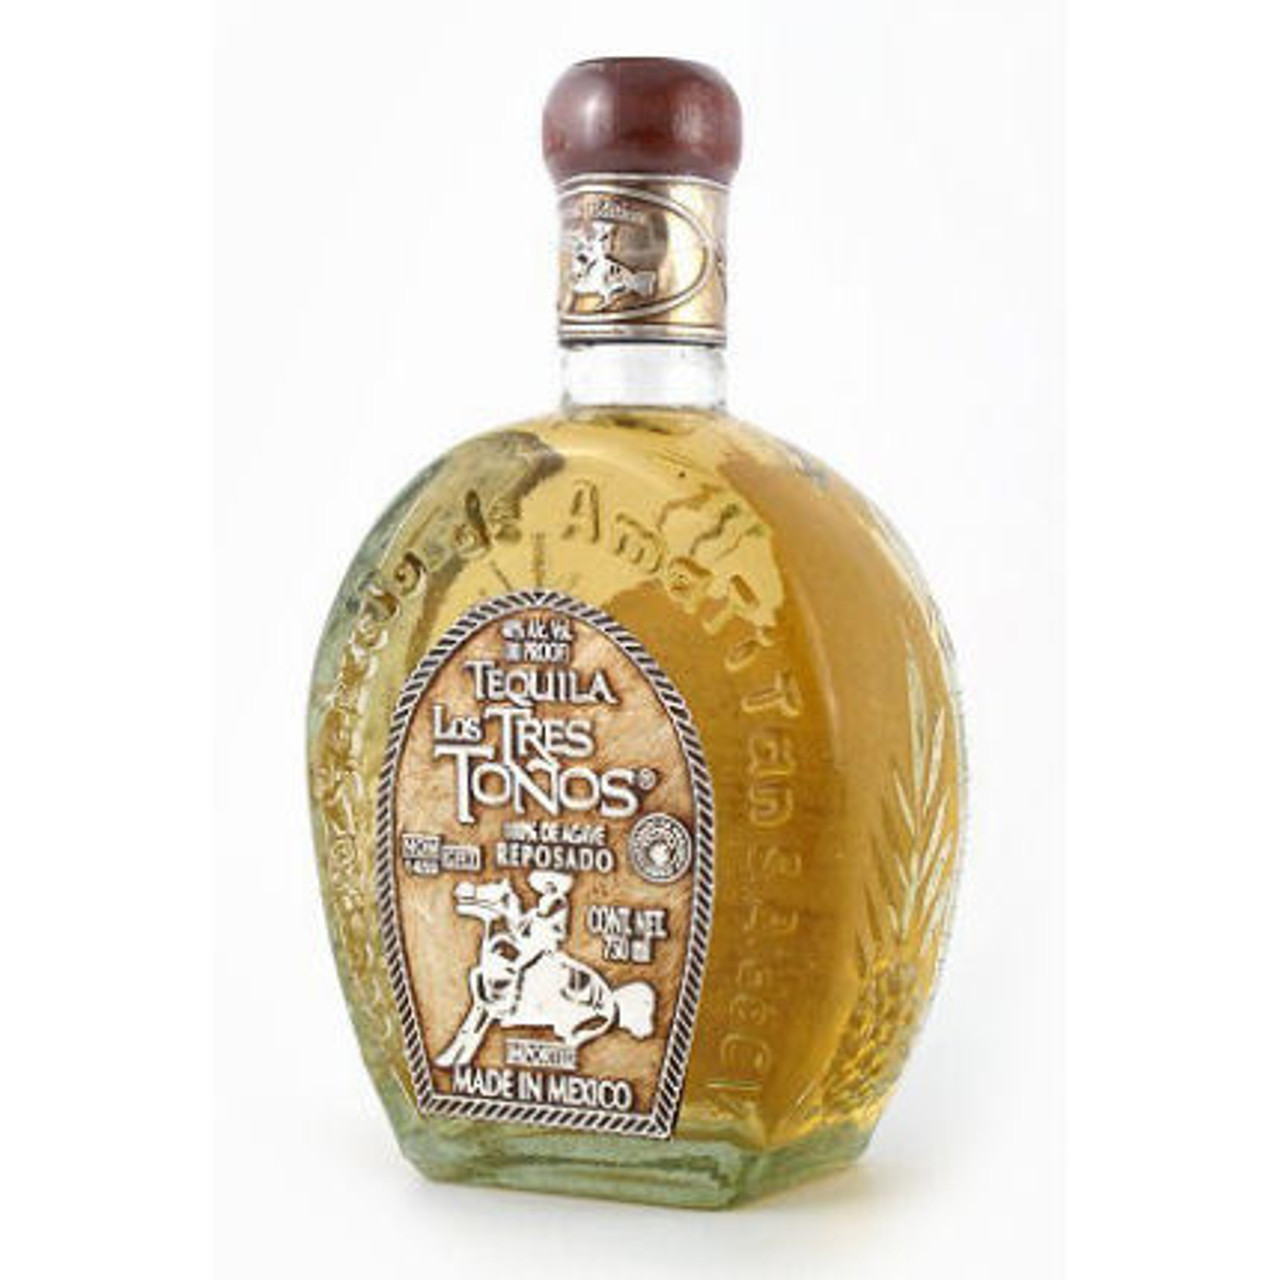 Tequila Los Tres Tonos Reposado is a Tequila produced from 100% Blue Agave Tequilana Weber, carefully planted and harvested at Tequila Selecto de Amatitan, and aged in American Bourbon barrels for a minumum of six months. Tequila Los Tres Tonos is bottled in an elegant artisan carafe specially designed for connoisseurs, which enhances the finesse of the tequila reflecting its high quality.